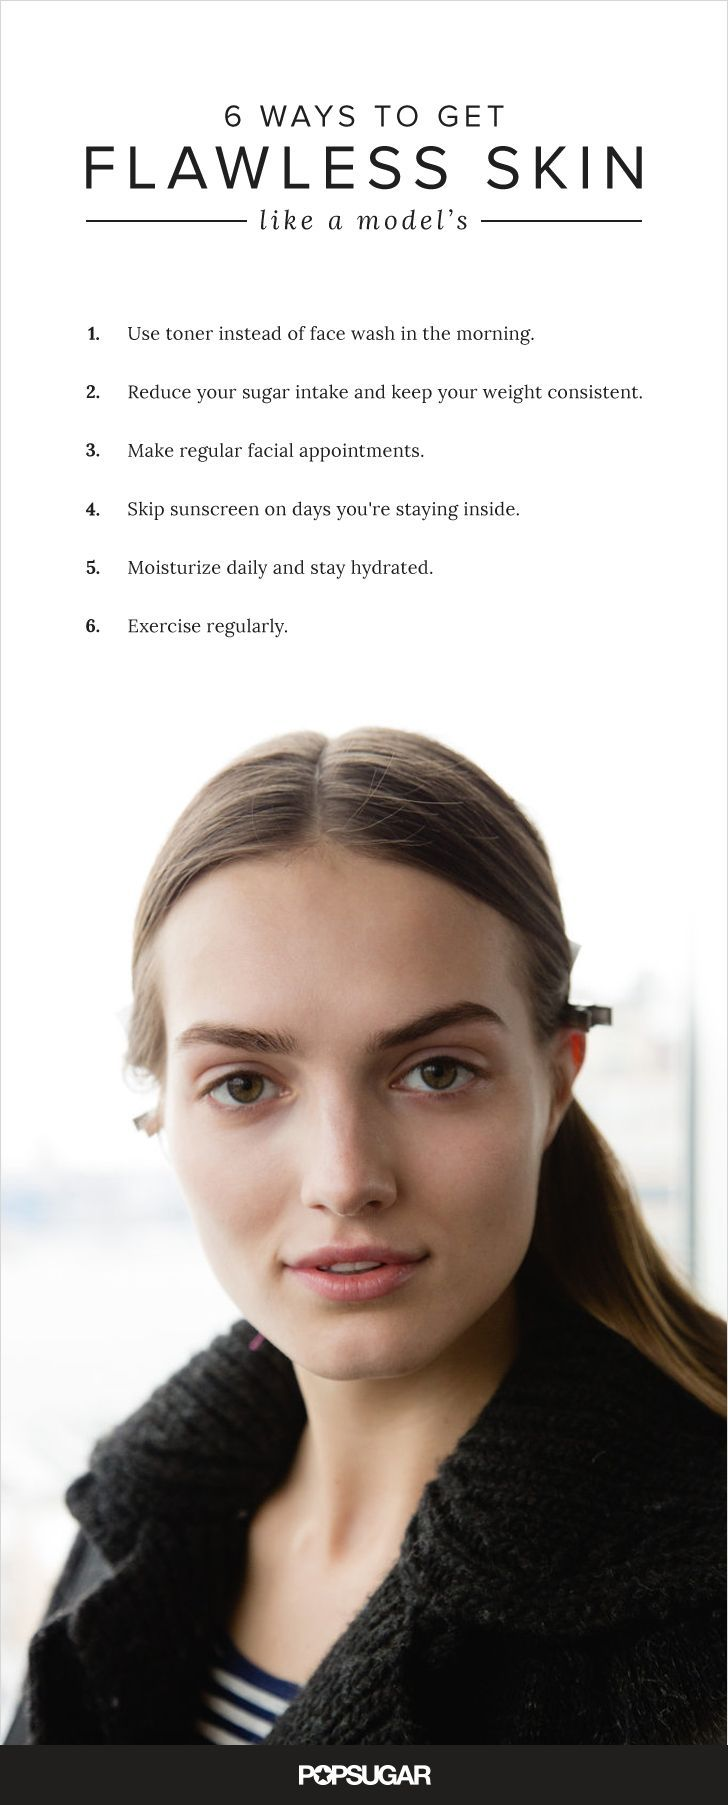 6 Things Models Always Do to Achieve Flawless Skin ...